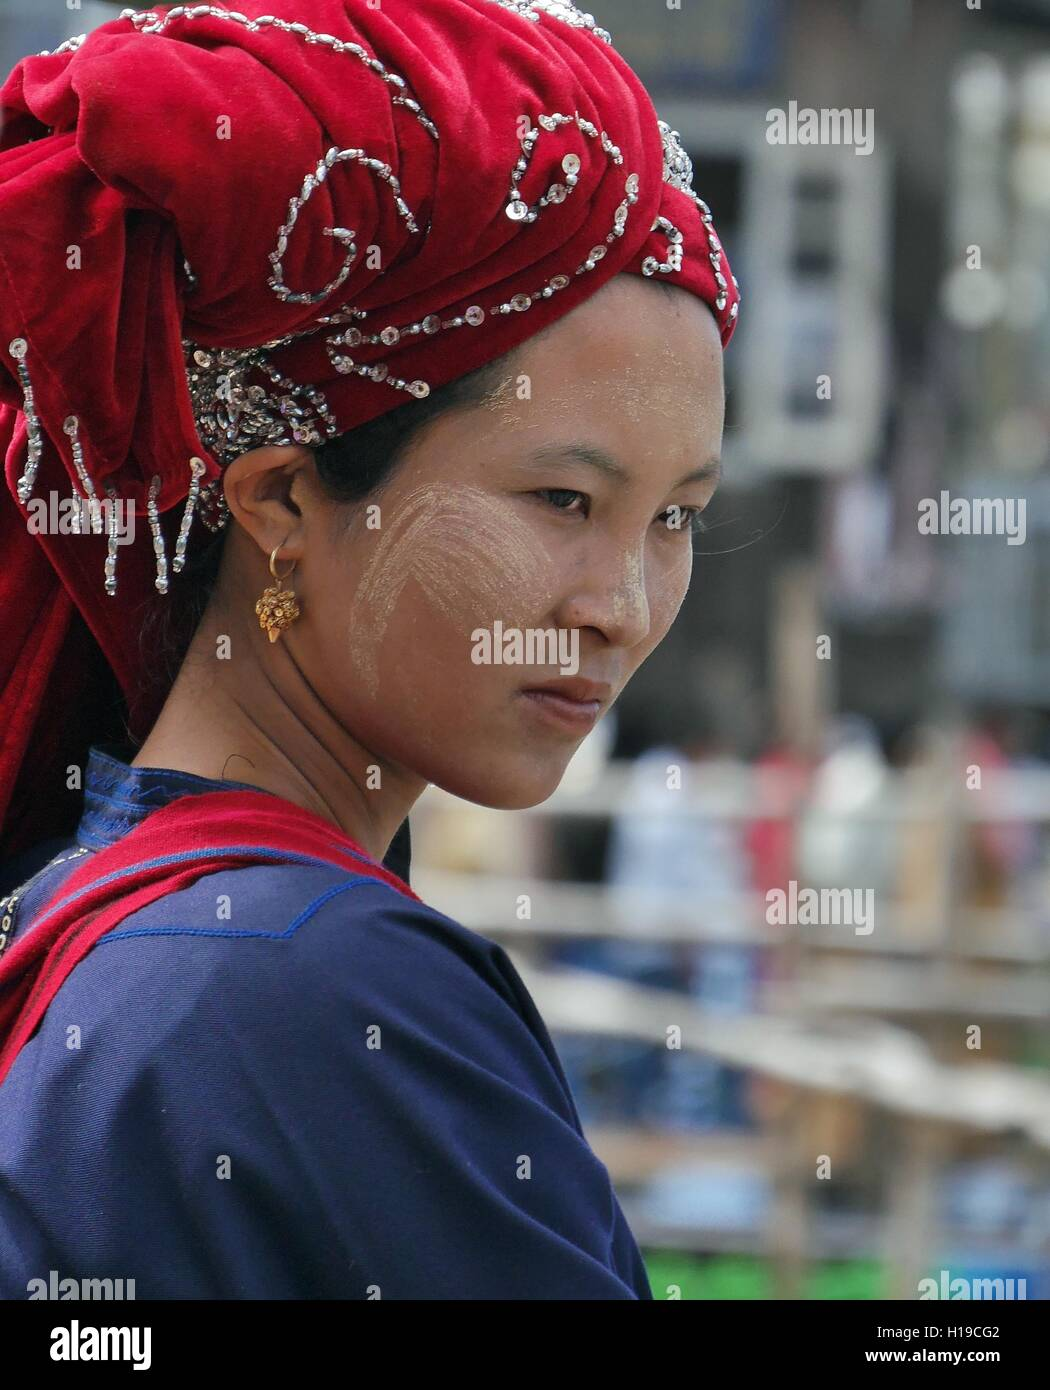 Pa-O woman wearing special headdress typical of that ethnic group at Phaung Daw Oo Pagoda Festival, Inle Lake, Shan - Stock Image